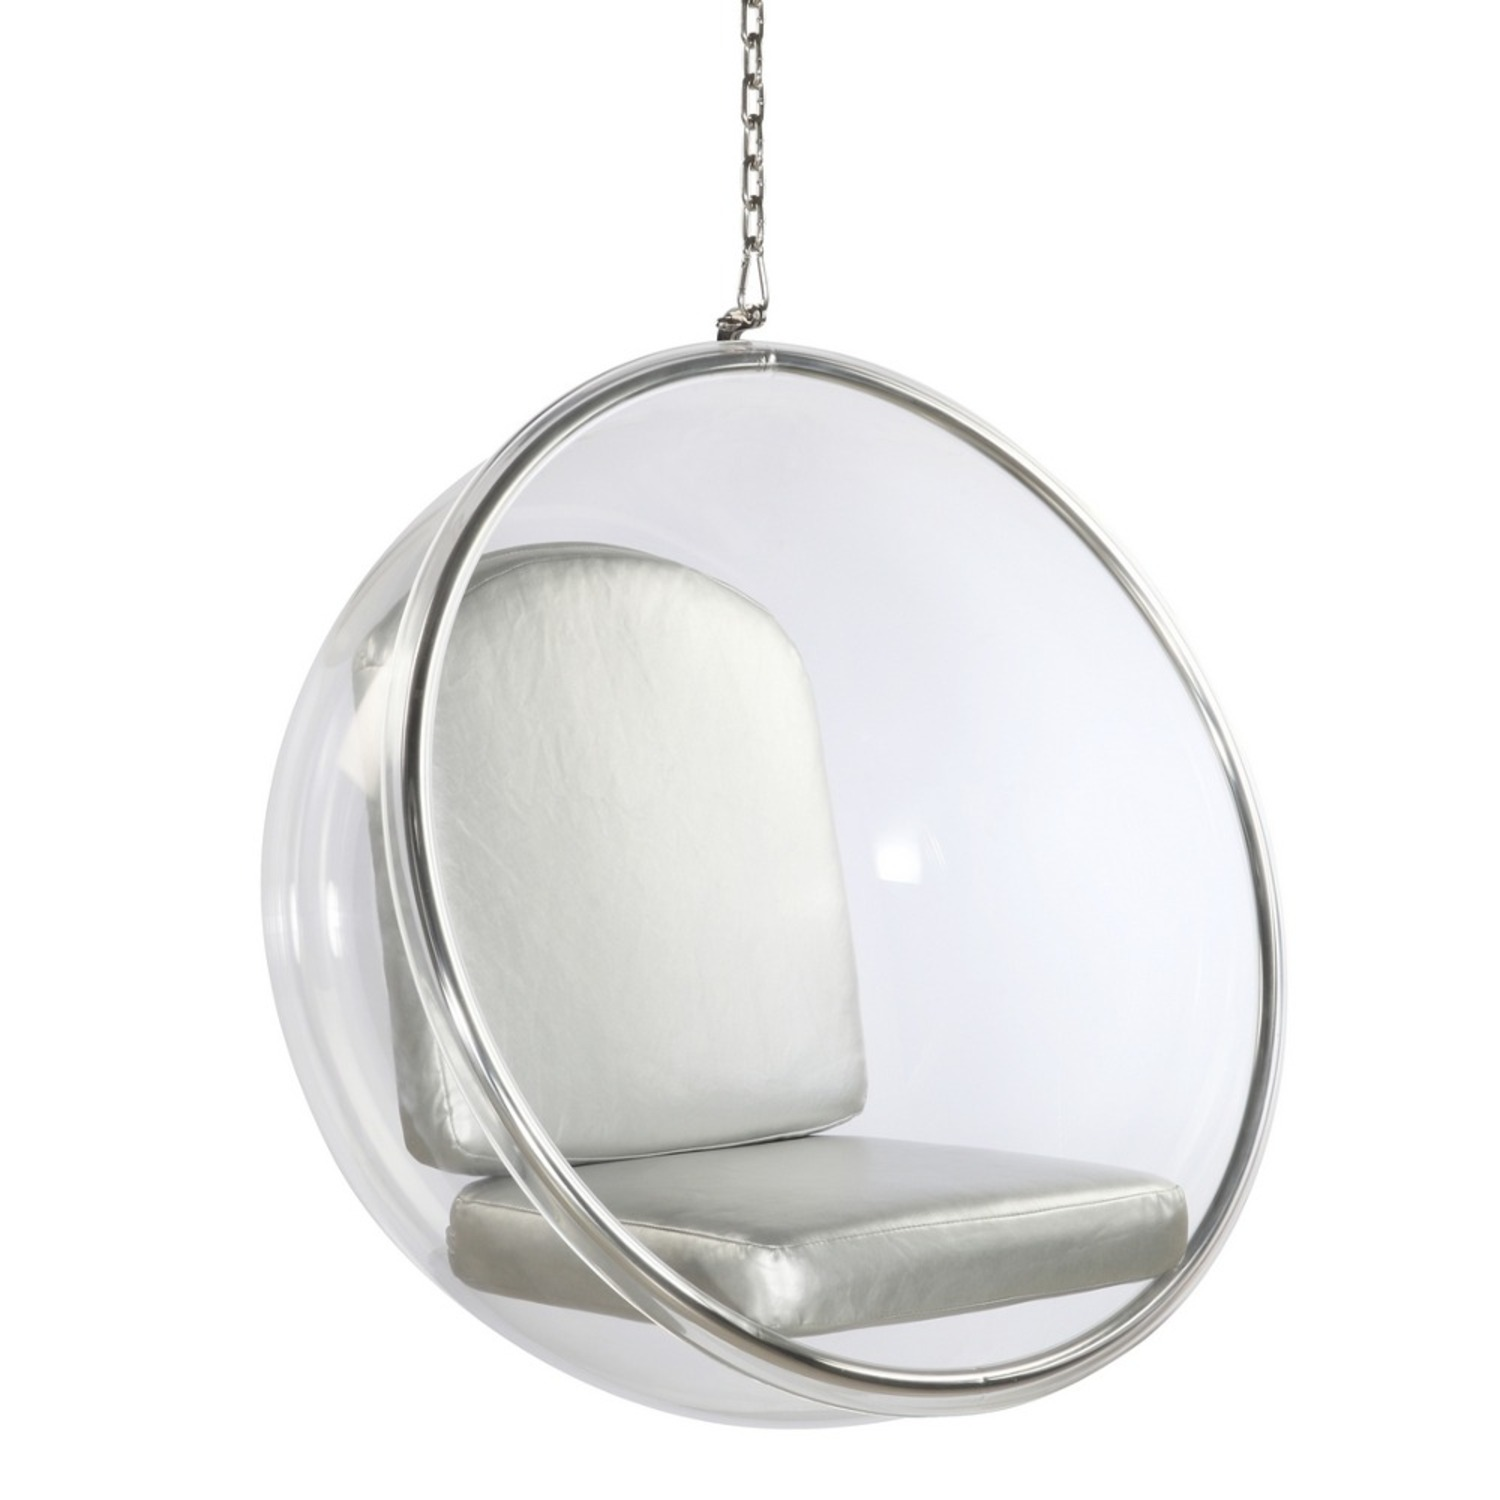 Hanging Chair In Clear Acrylic & Silver PU Leather - image-0